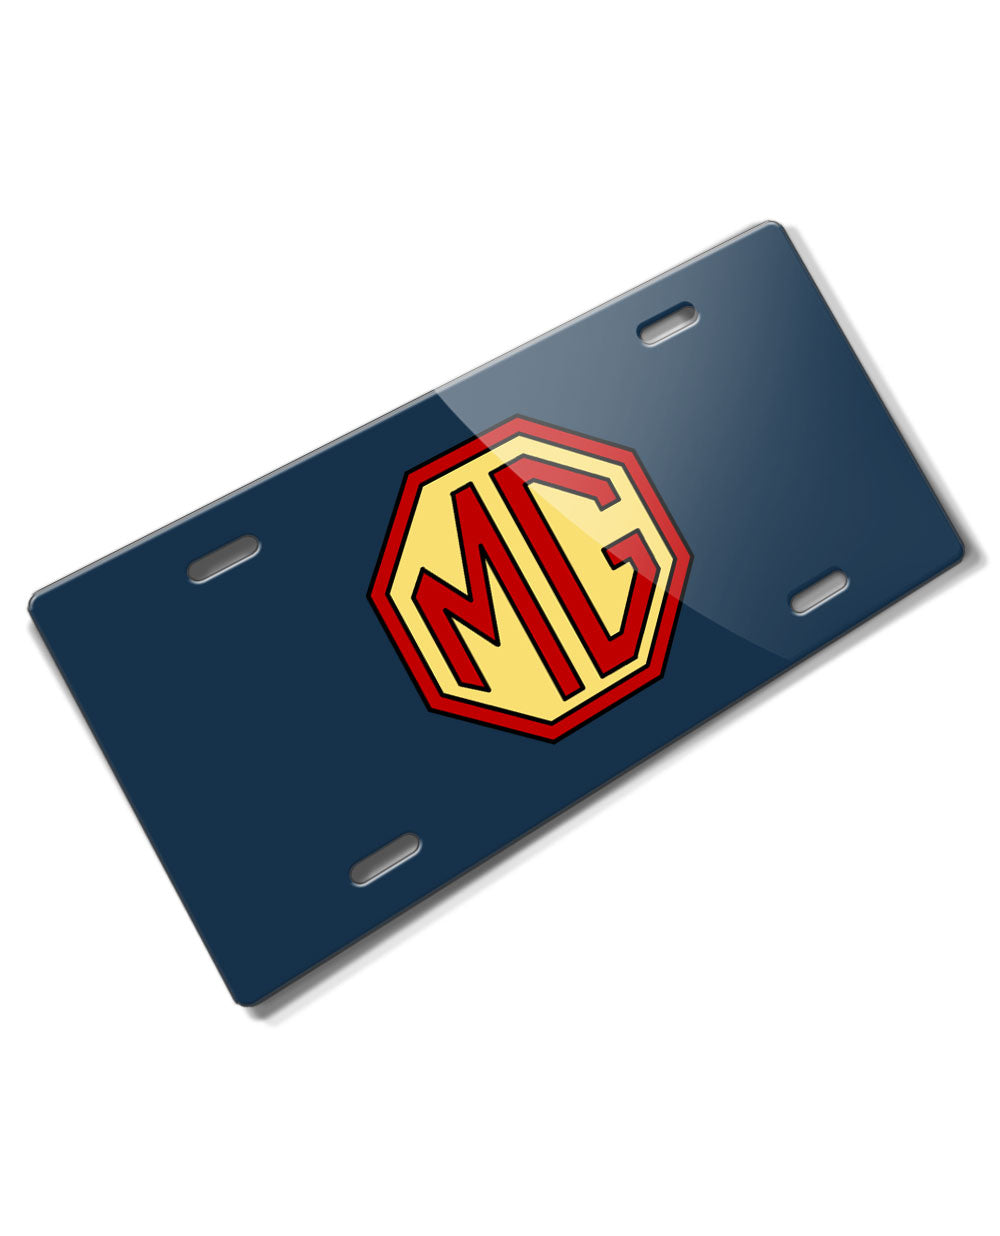 MG Badge Emblem Novelty License Plate - Vintage Emblem